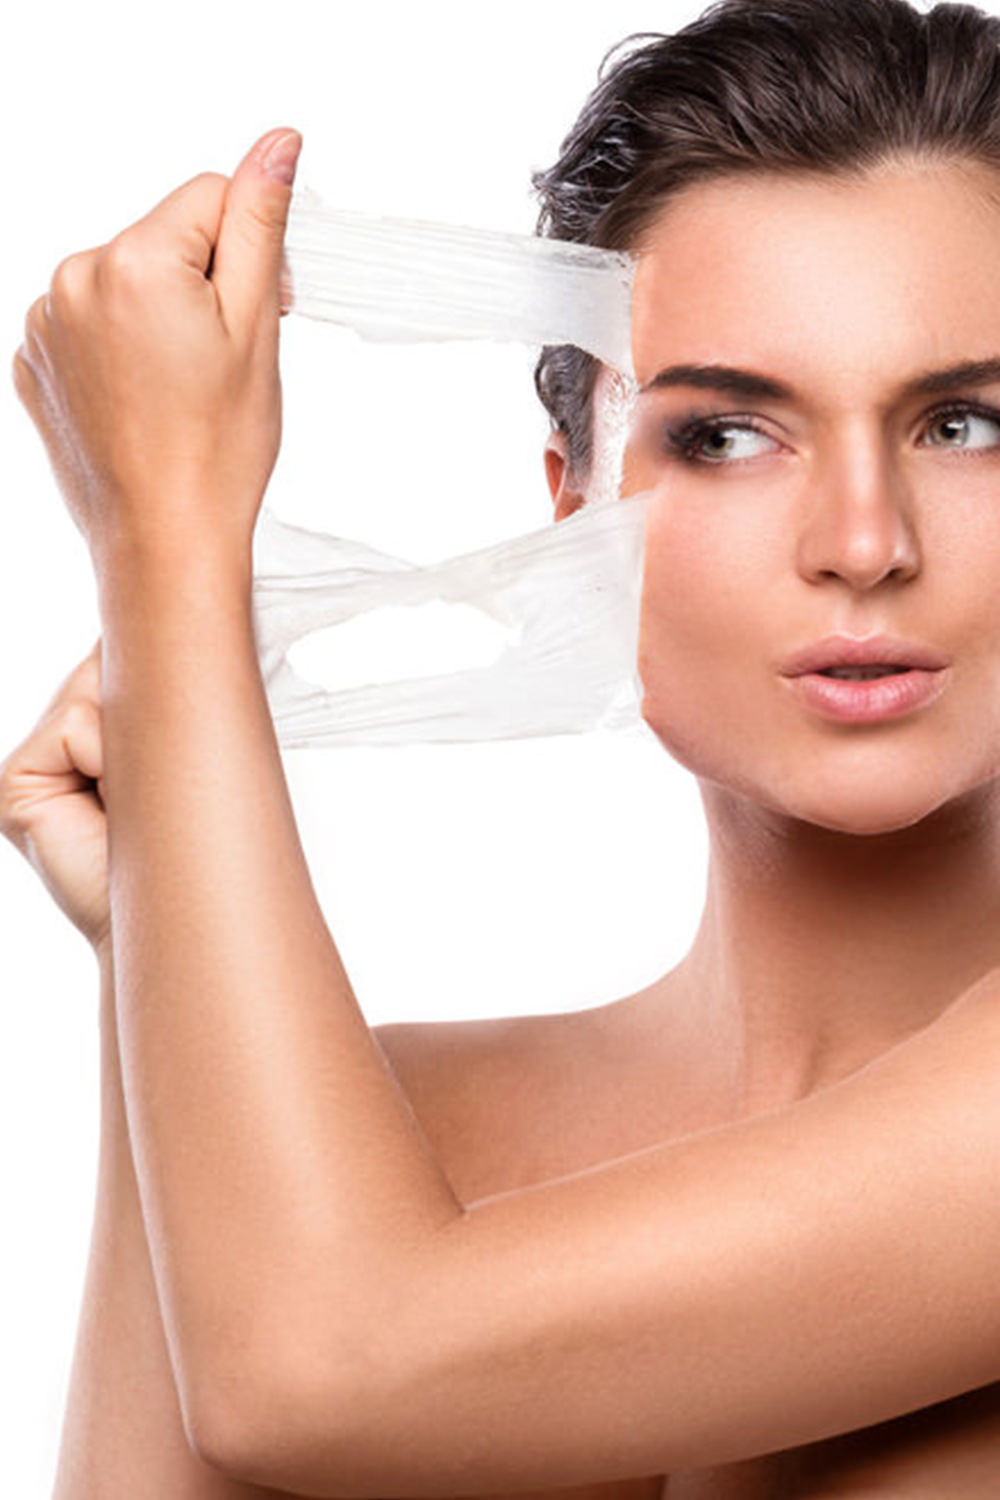 Peels - $65Performing at the highest level, medical grade peels deliver stunning results for all skin types and hues. Affecting change in the areas of acne, melasma, fine lines and aging, sun spots, pore size, and the tightening and toning of tissue, peels are applied under the direction of a doctor's care.